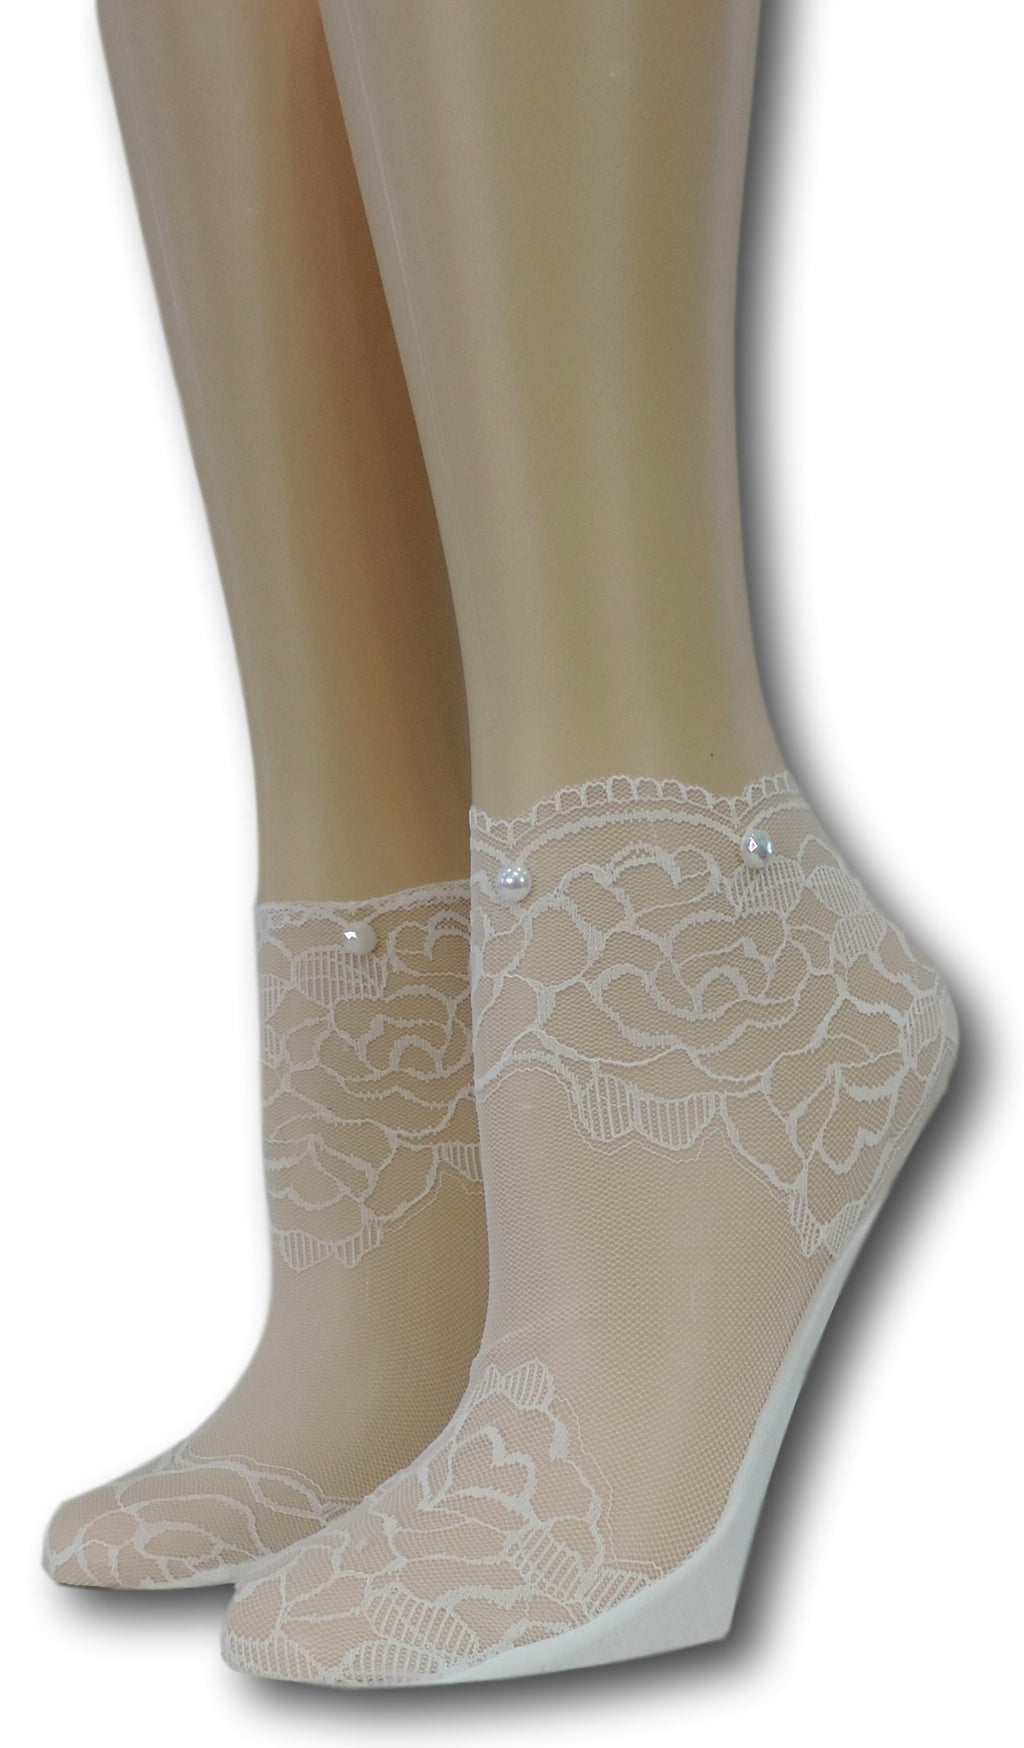 White Rose Ankle Sheer Socks with beads